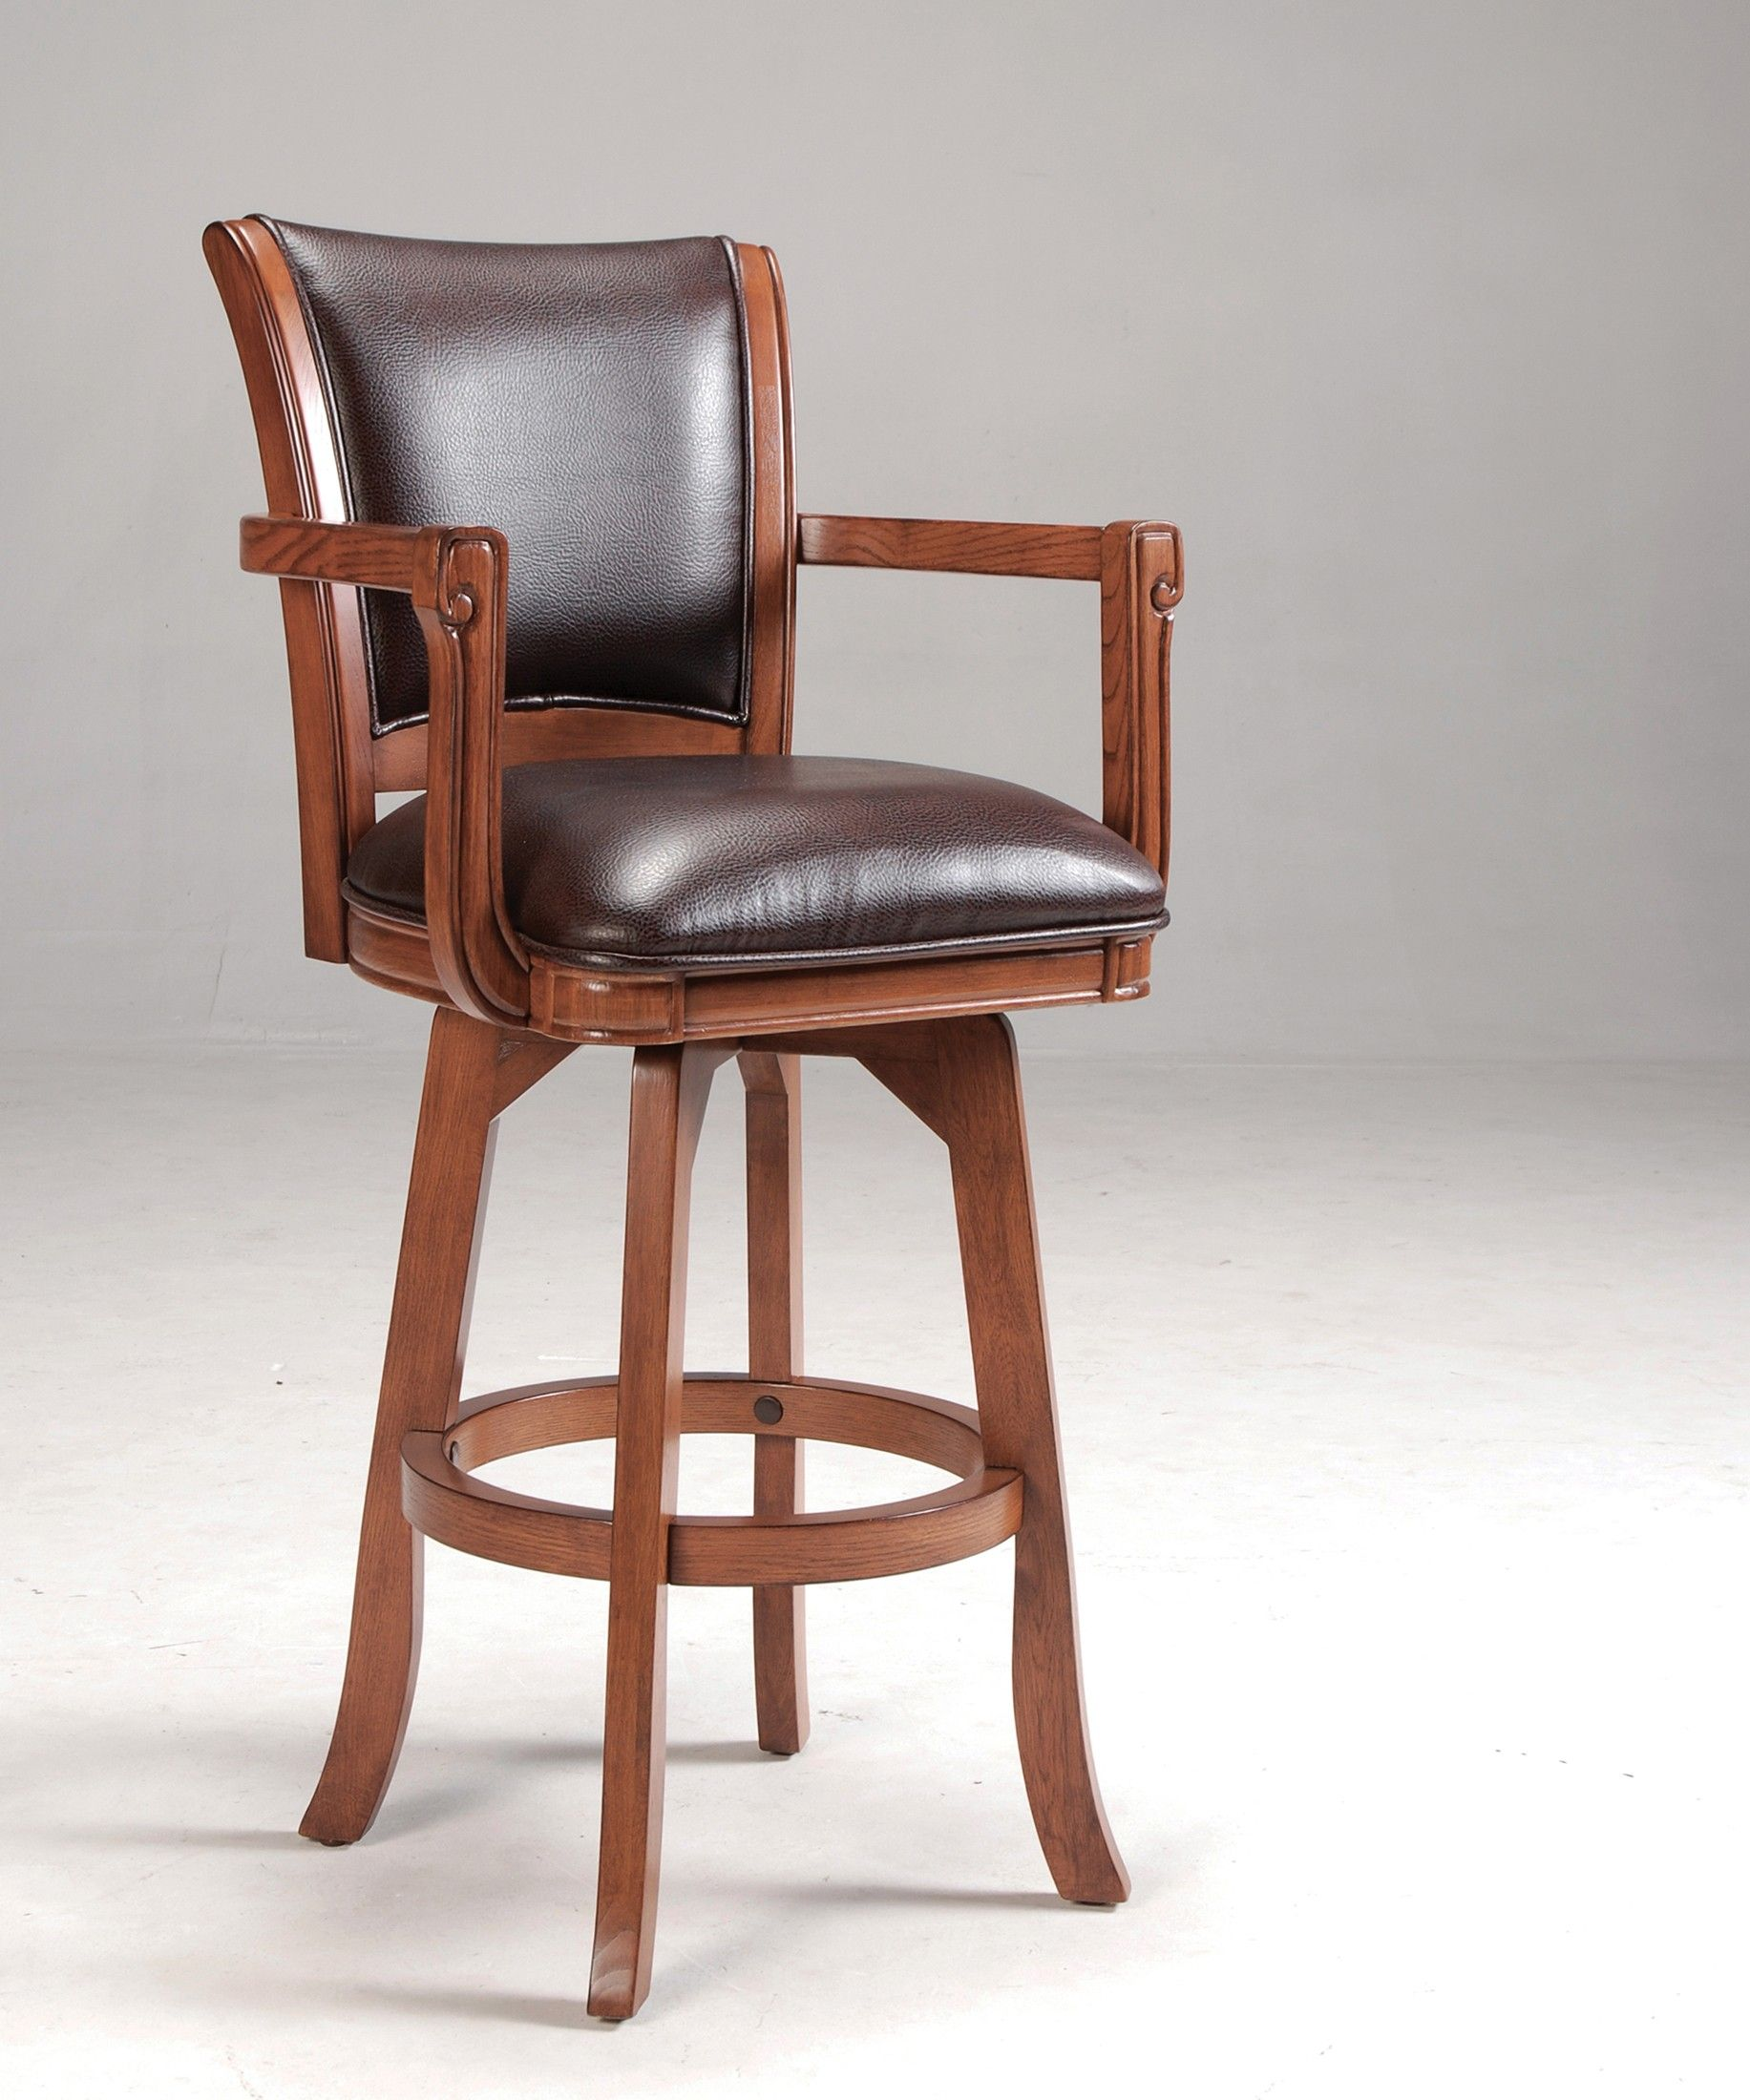 Merveilleux Park View Wood Swivel Bar Stool In Brown Oak By Hillsdale Furniture